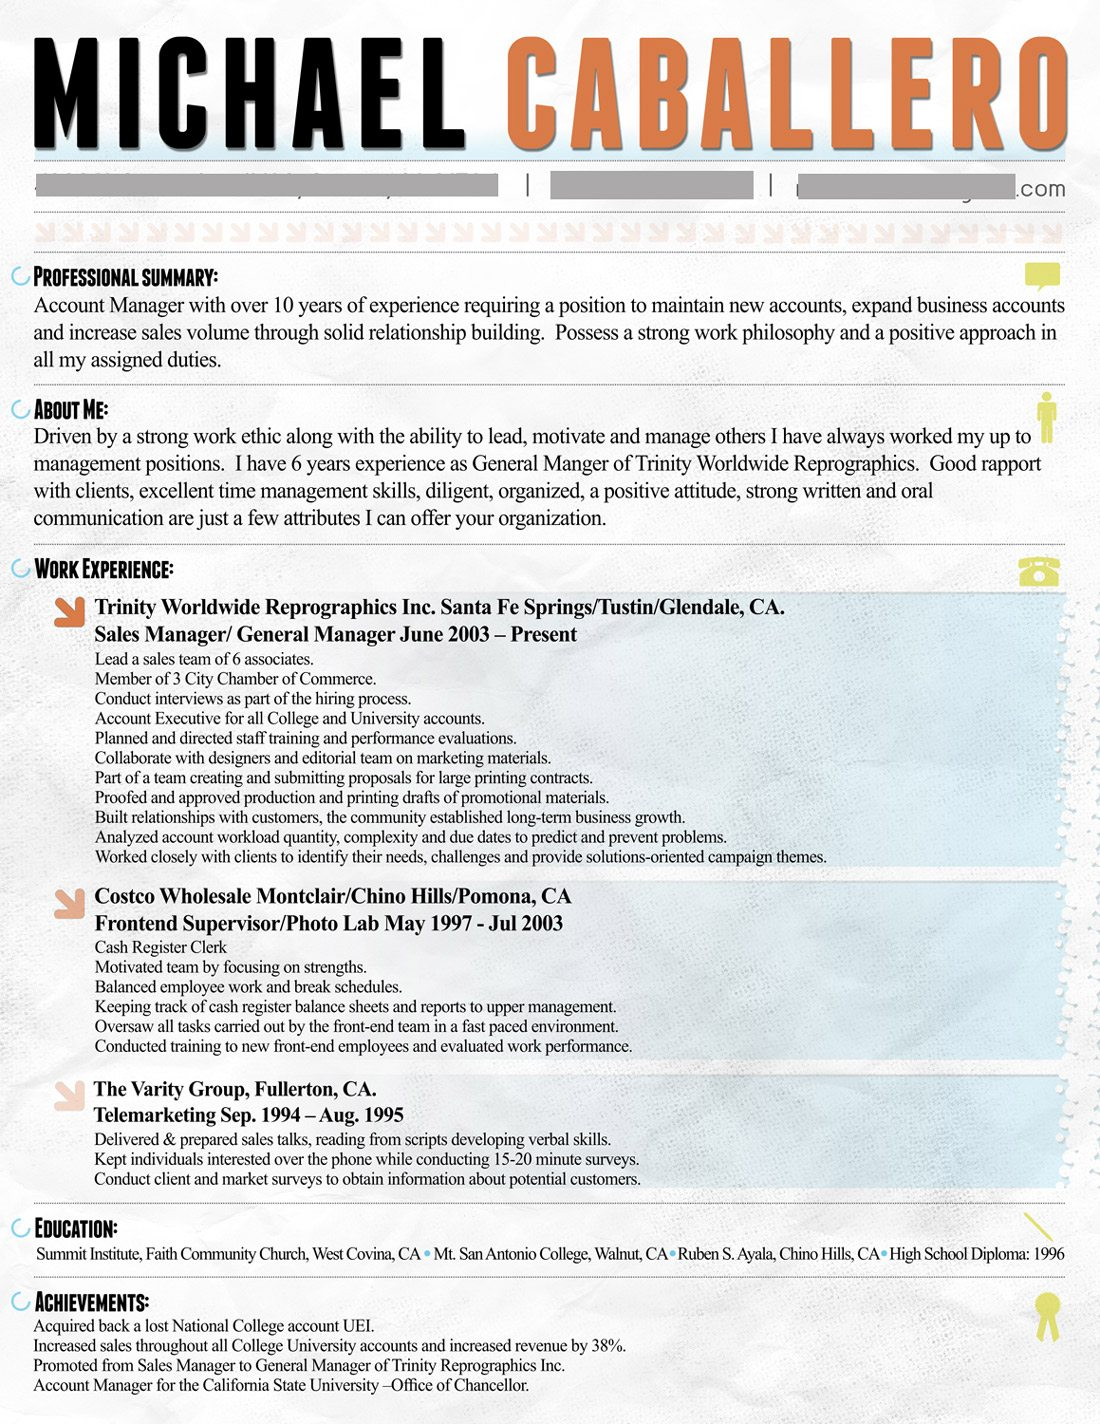 Resume Design  About Me Resume